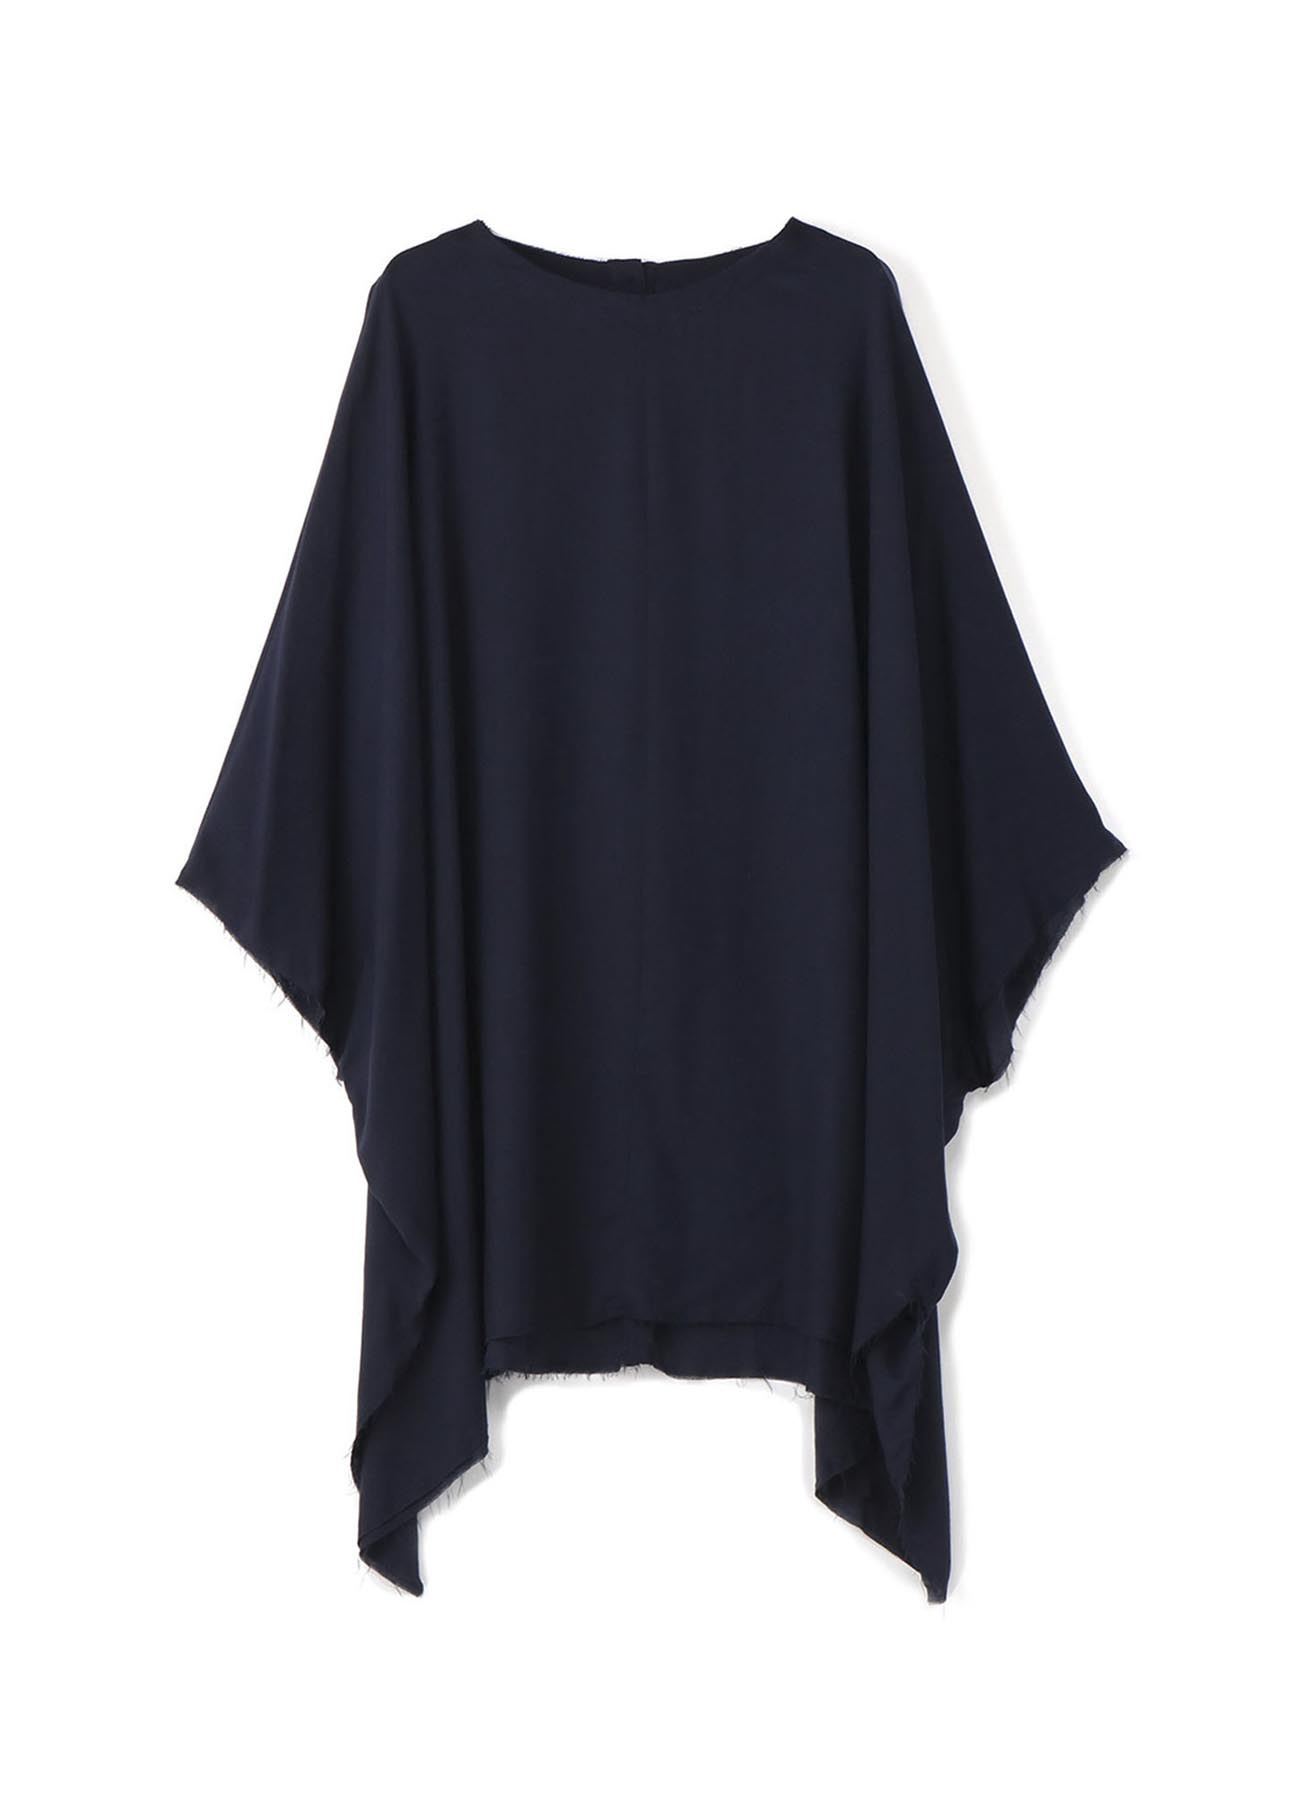 Tencel Vieira Big Pullover